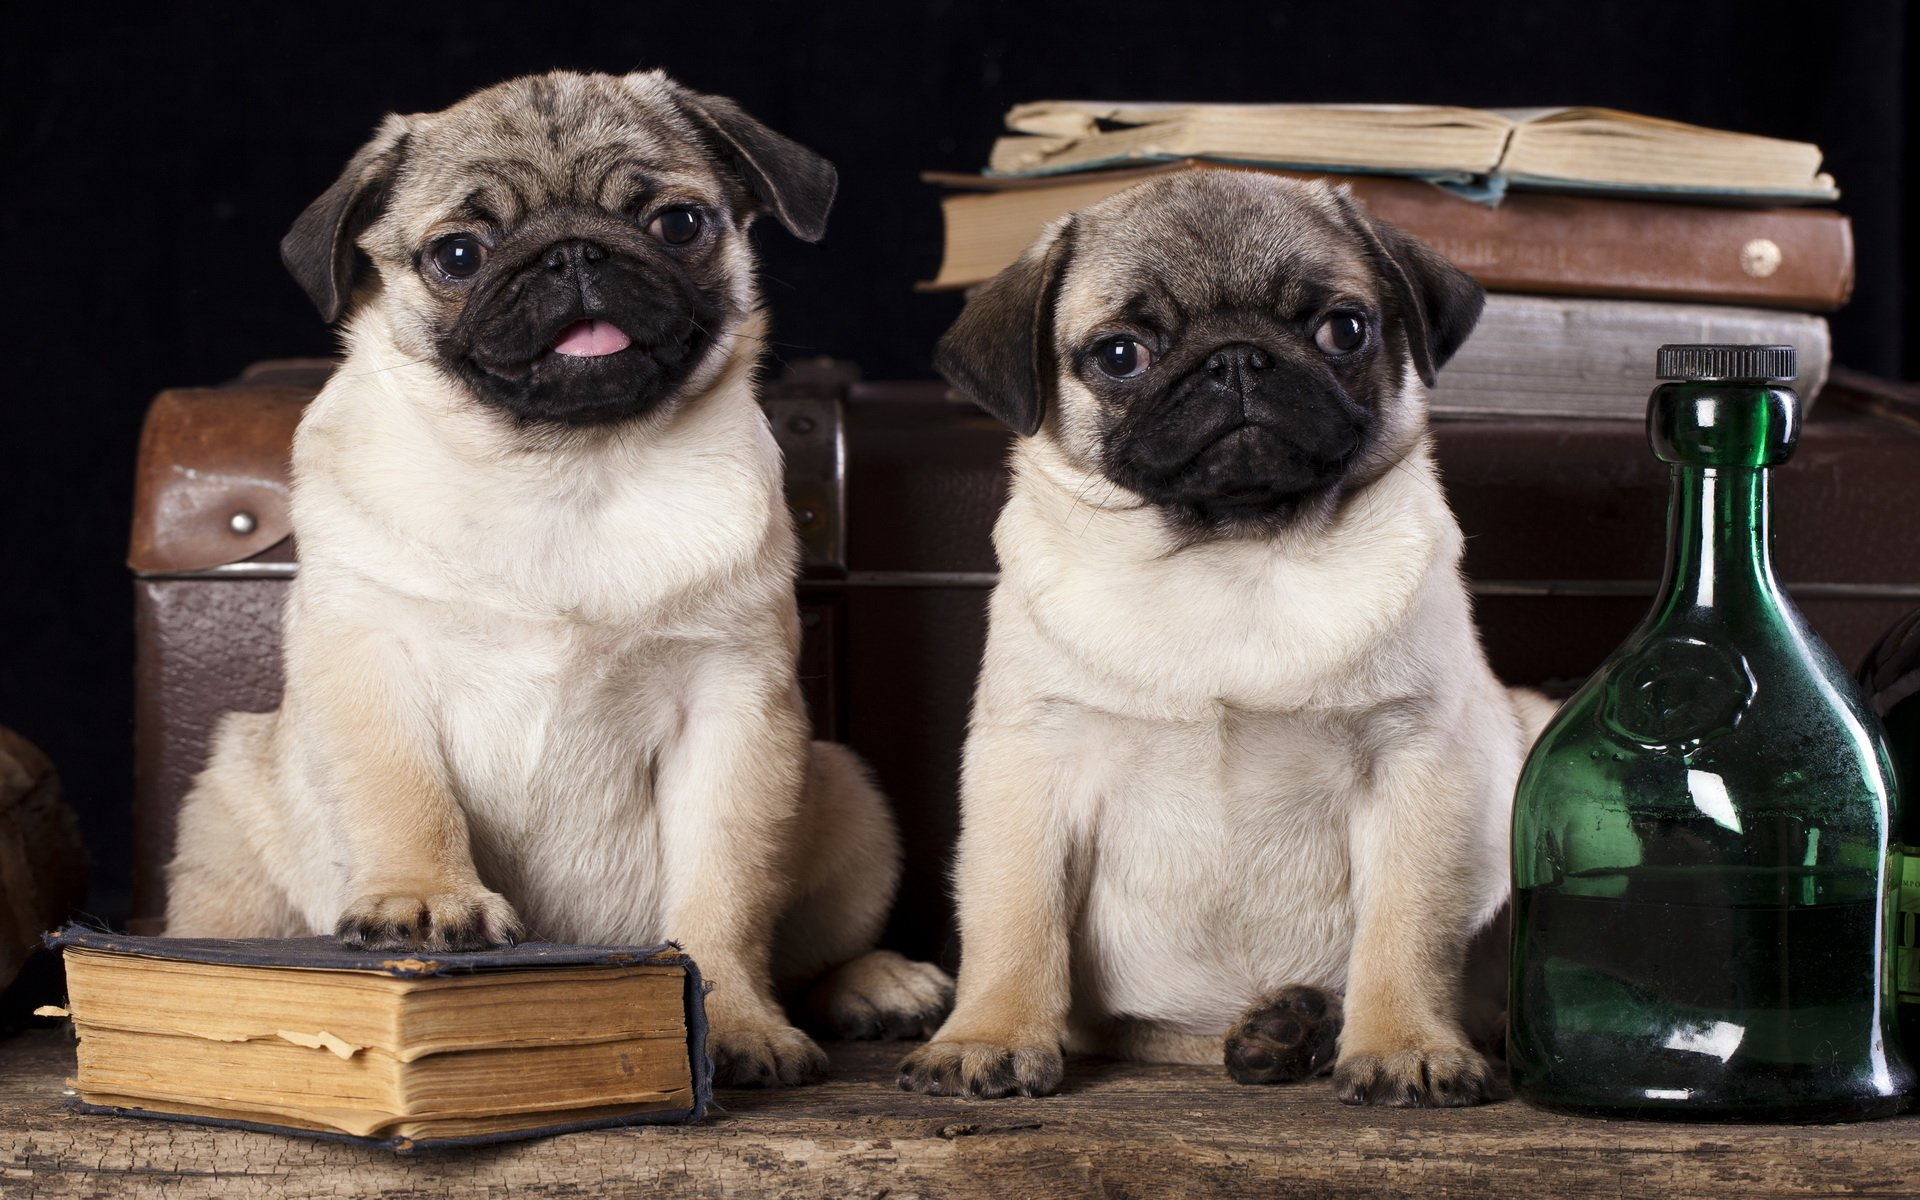 Pug Iphone Wallpaper Pug Full Hd Wallpaper And Background Image 1920x1200